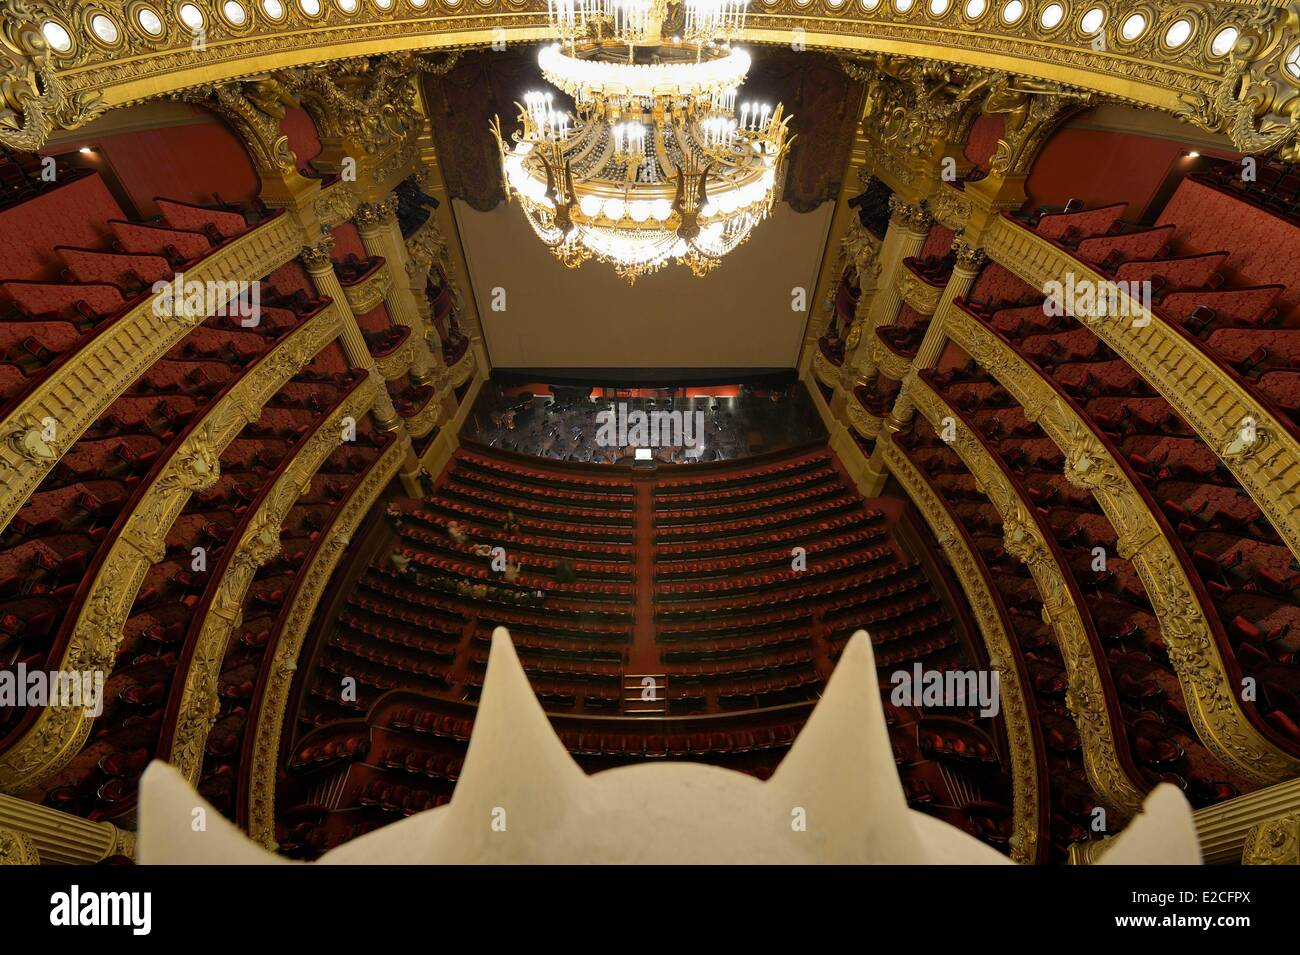 France, Paris, Garnier Opera, the auditorium overlooked by the 7 to 8 ton bronze and crystal chandelier designed - Stock Image